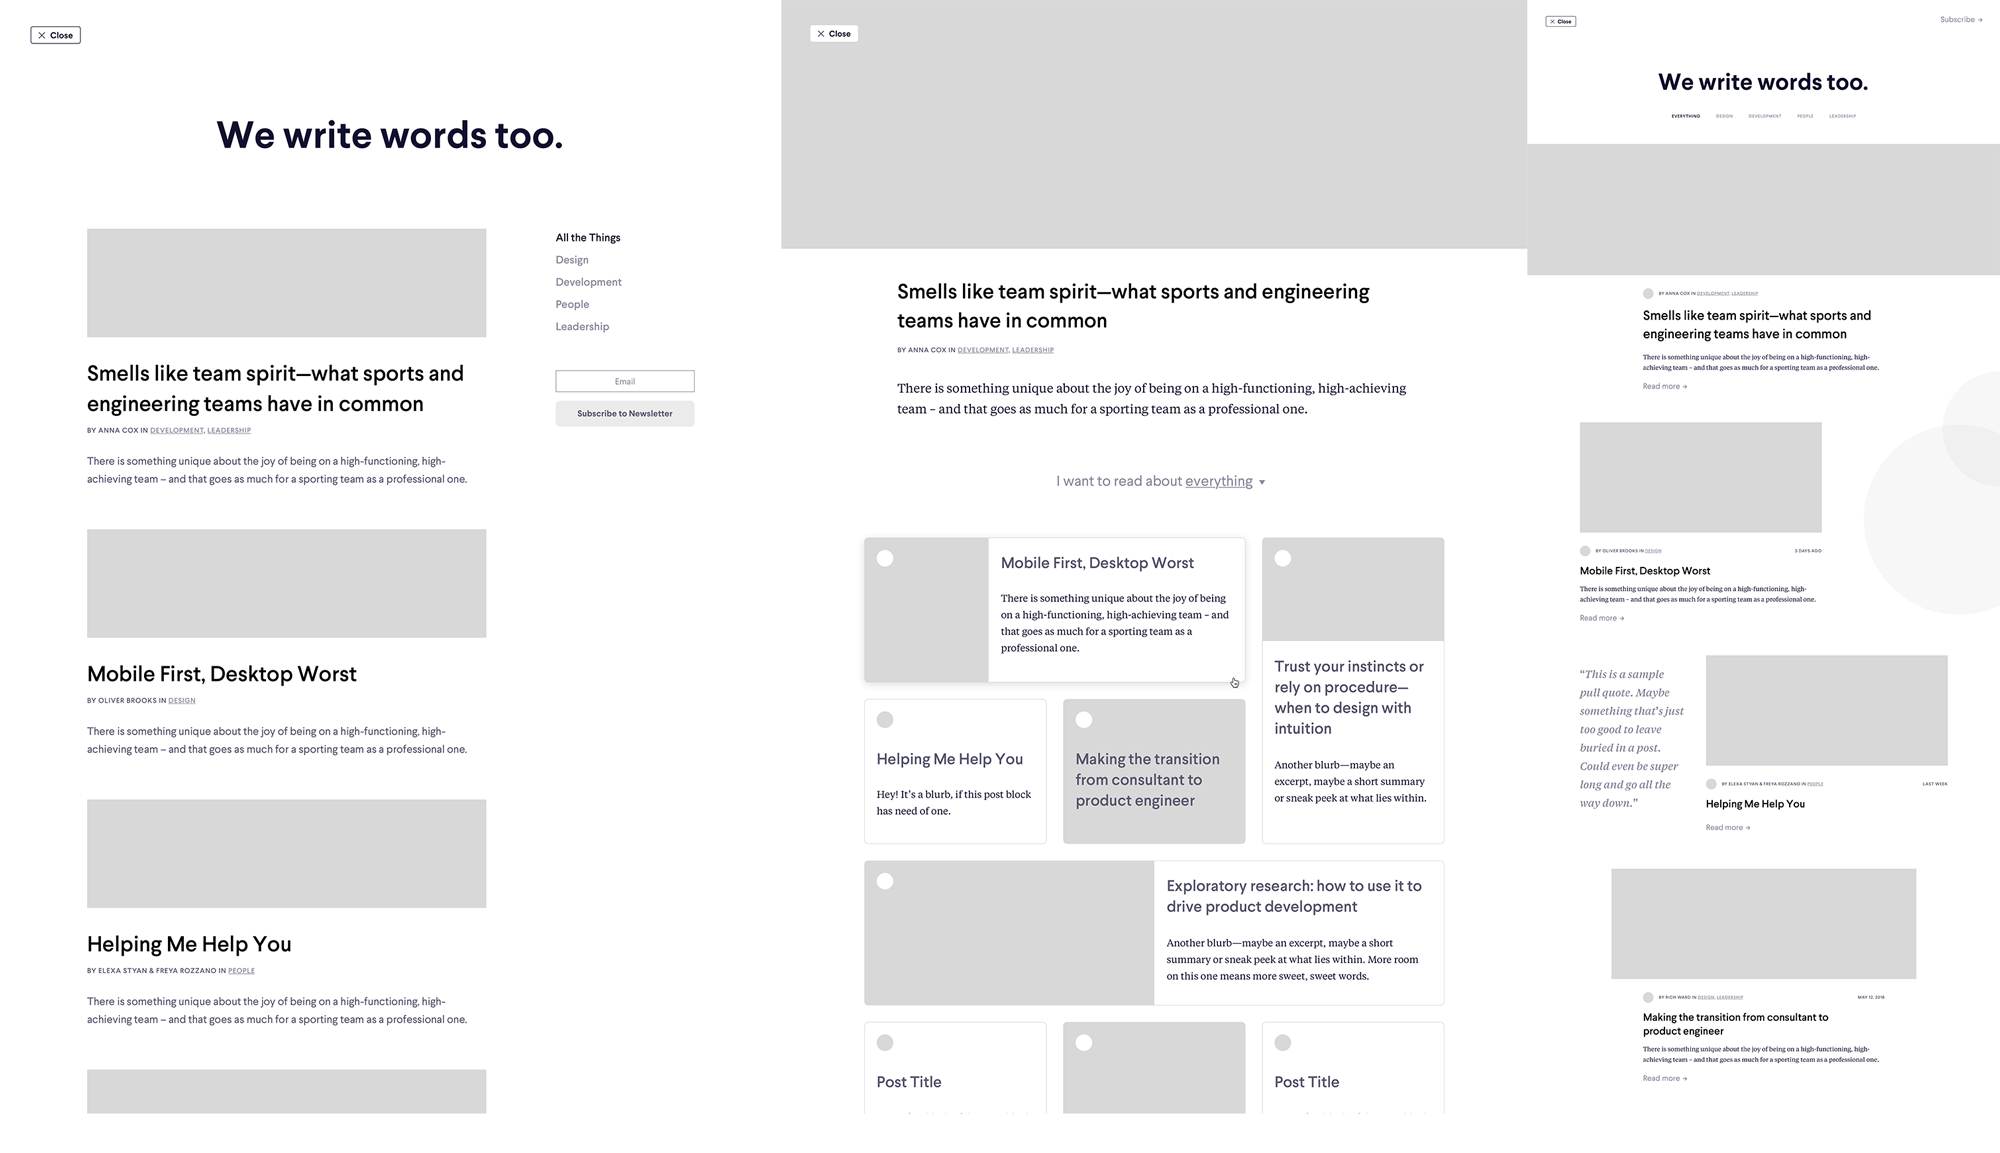 Wireframes from the early MetaLab blog design exploration